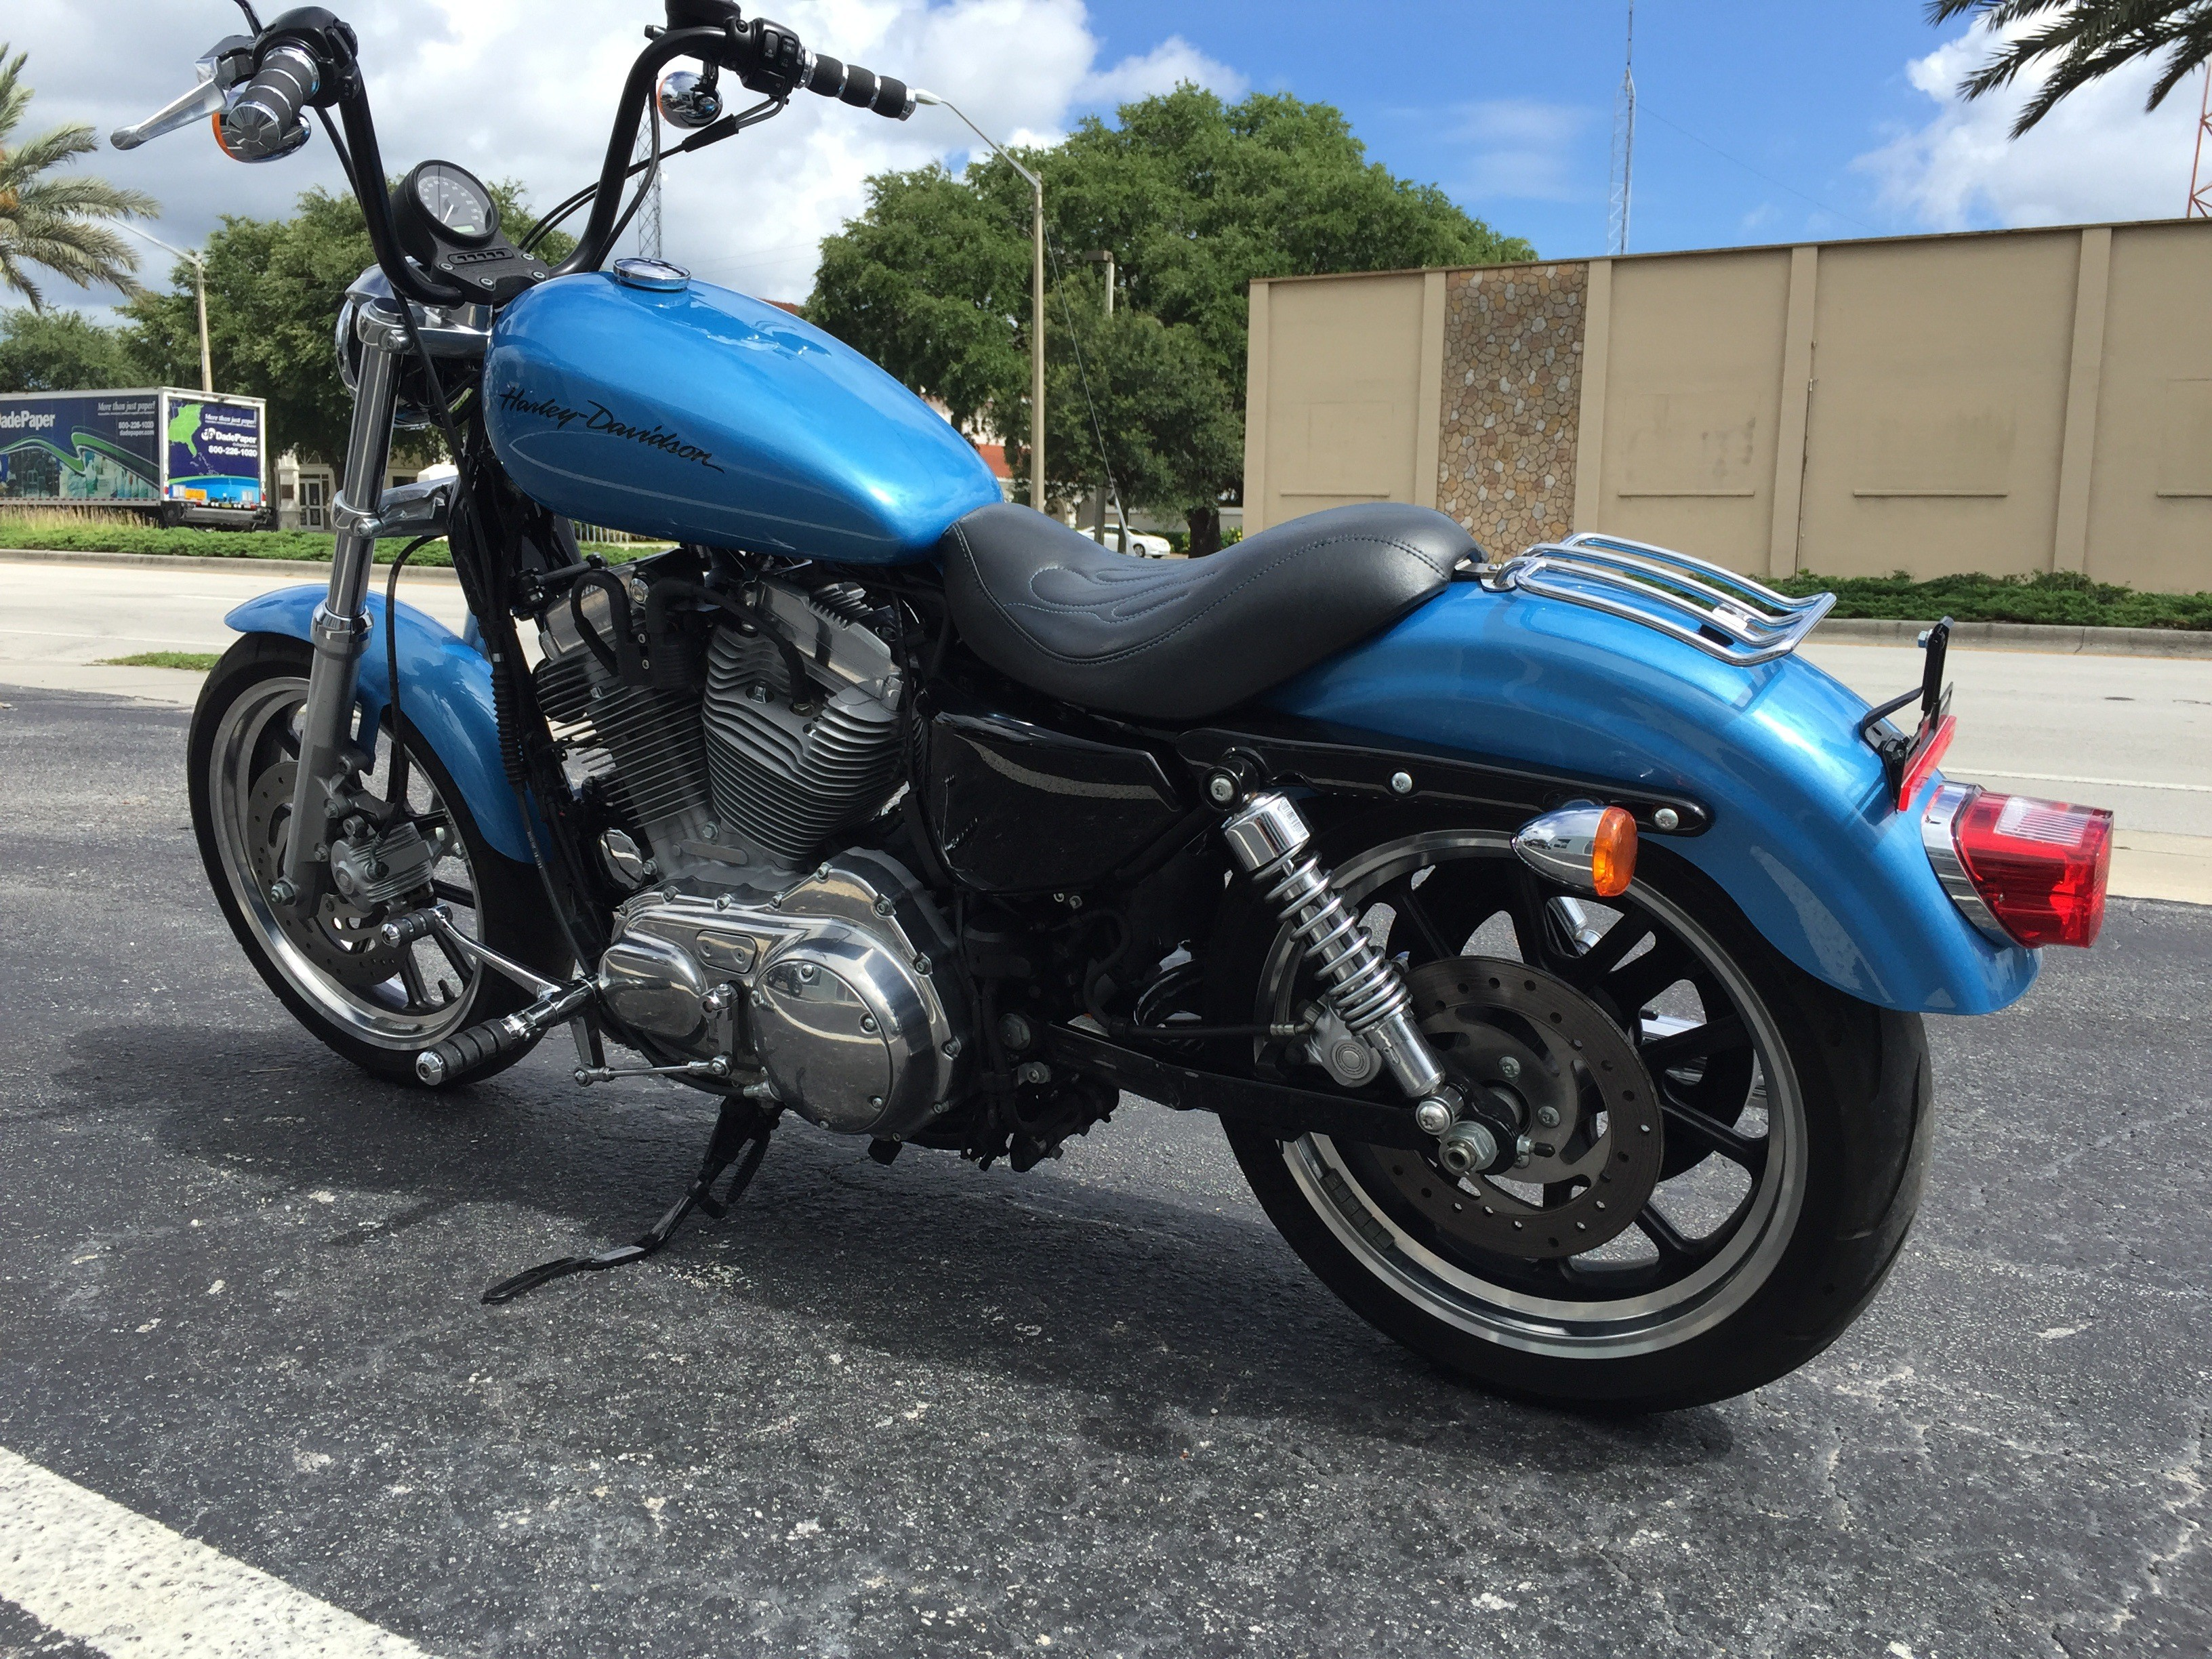 Used 2011 Harley Davidson Sportster 883 Superlow Motorcycles In Cocoa Fl Cool Blue Pearl N A